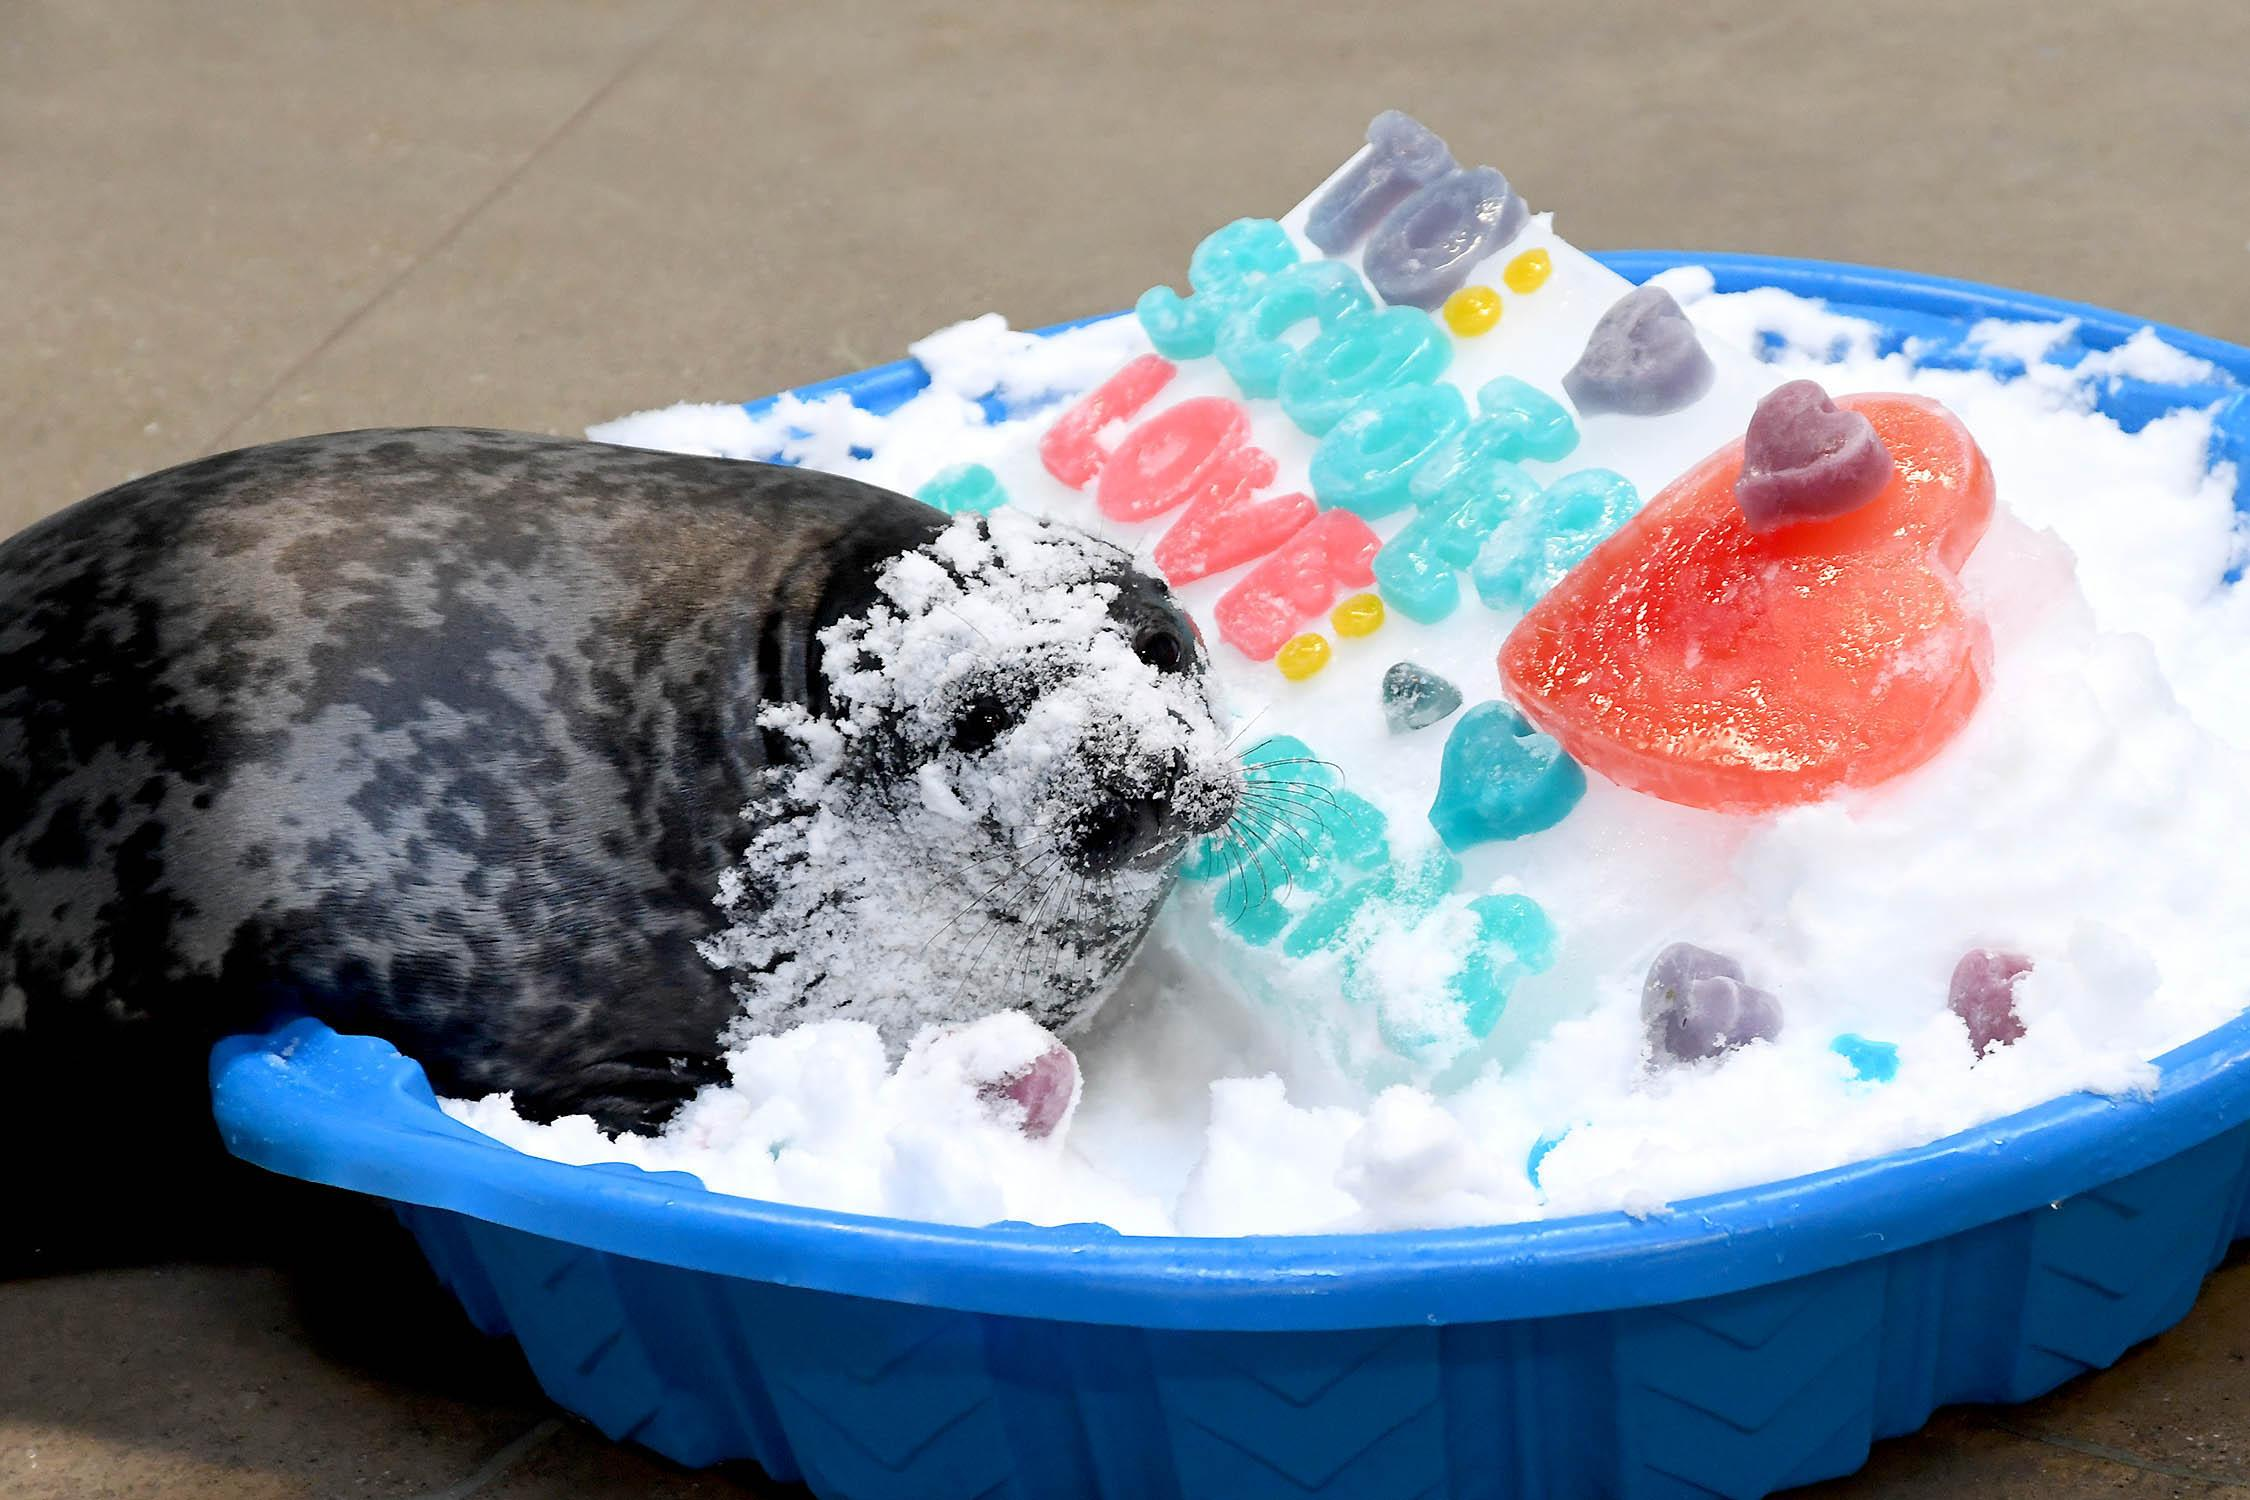 Scooter, a nearly 2-month-old gray seal at Brookfield Zoo, enjoys a Valentine's Day treat of gelatin served with a side of snow. (Jim Schulz / Chicago Zoological Society)